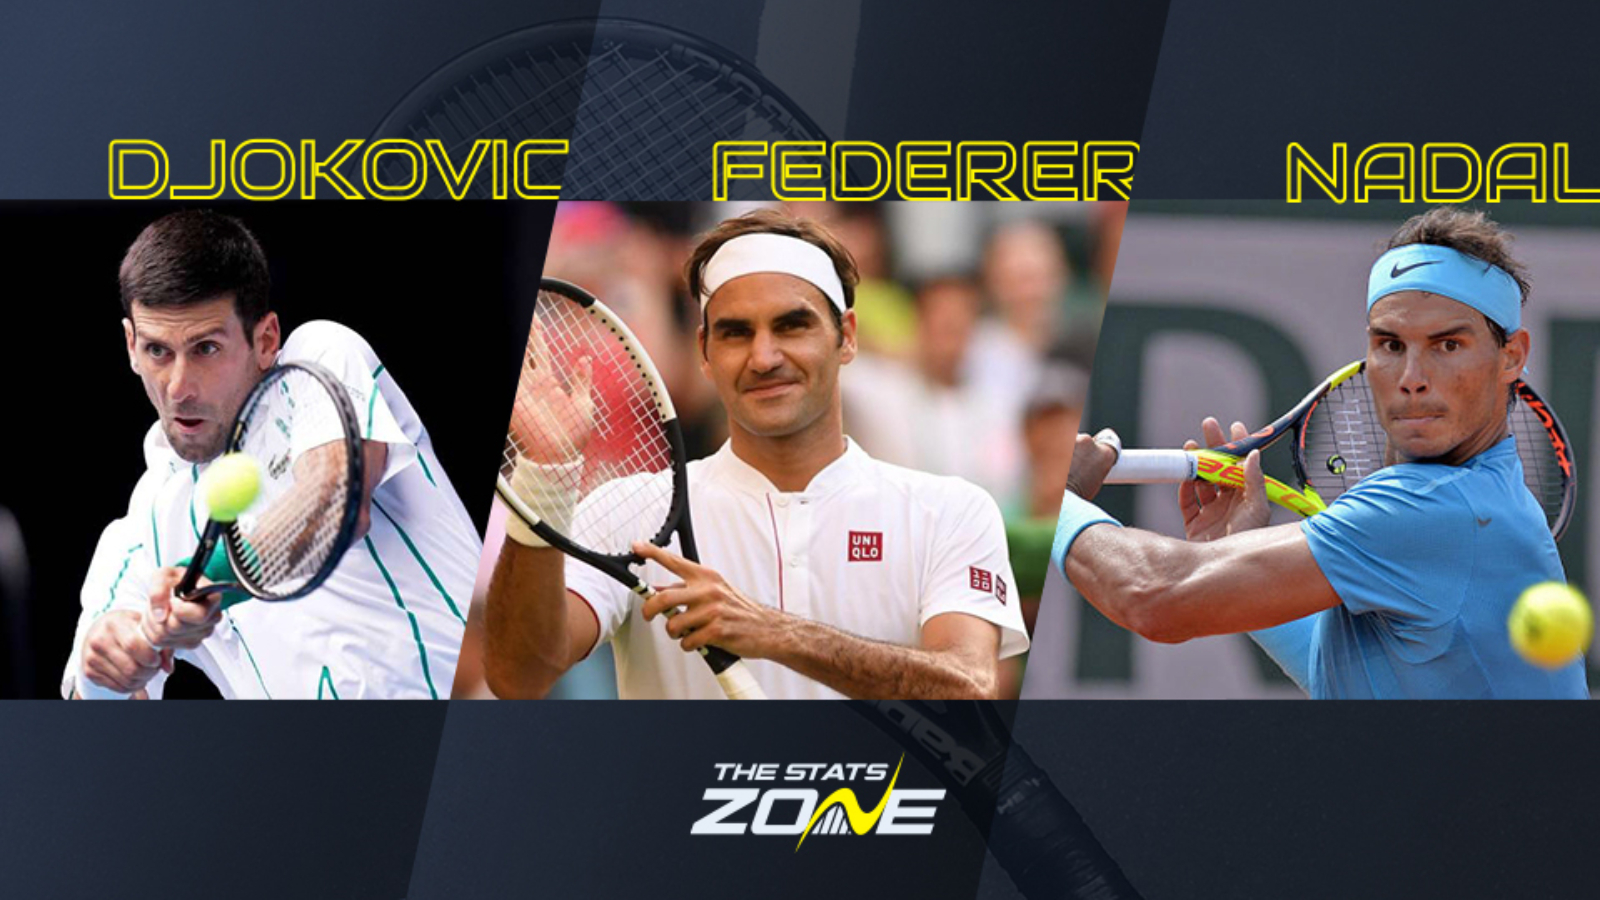 Federer Nadal Or Djokovic How Should We Decide Who Is The Best Of The Big Three The Stats Zone